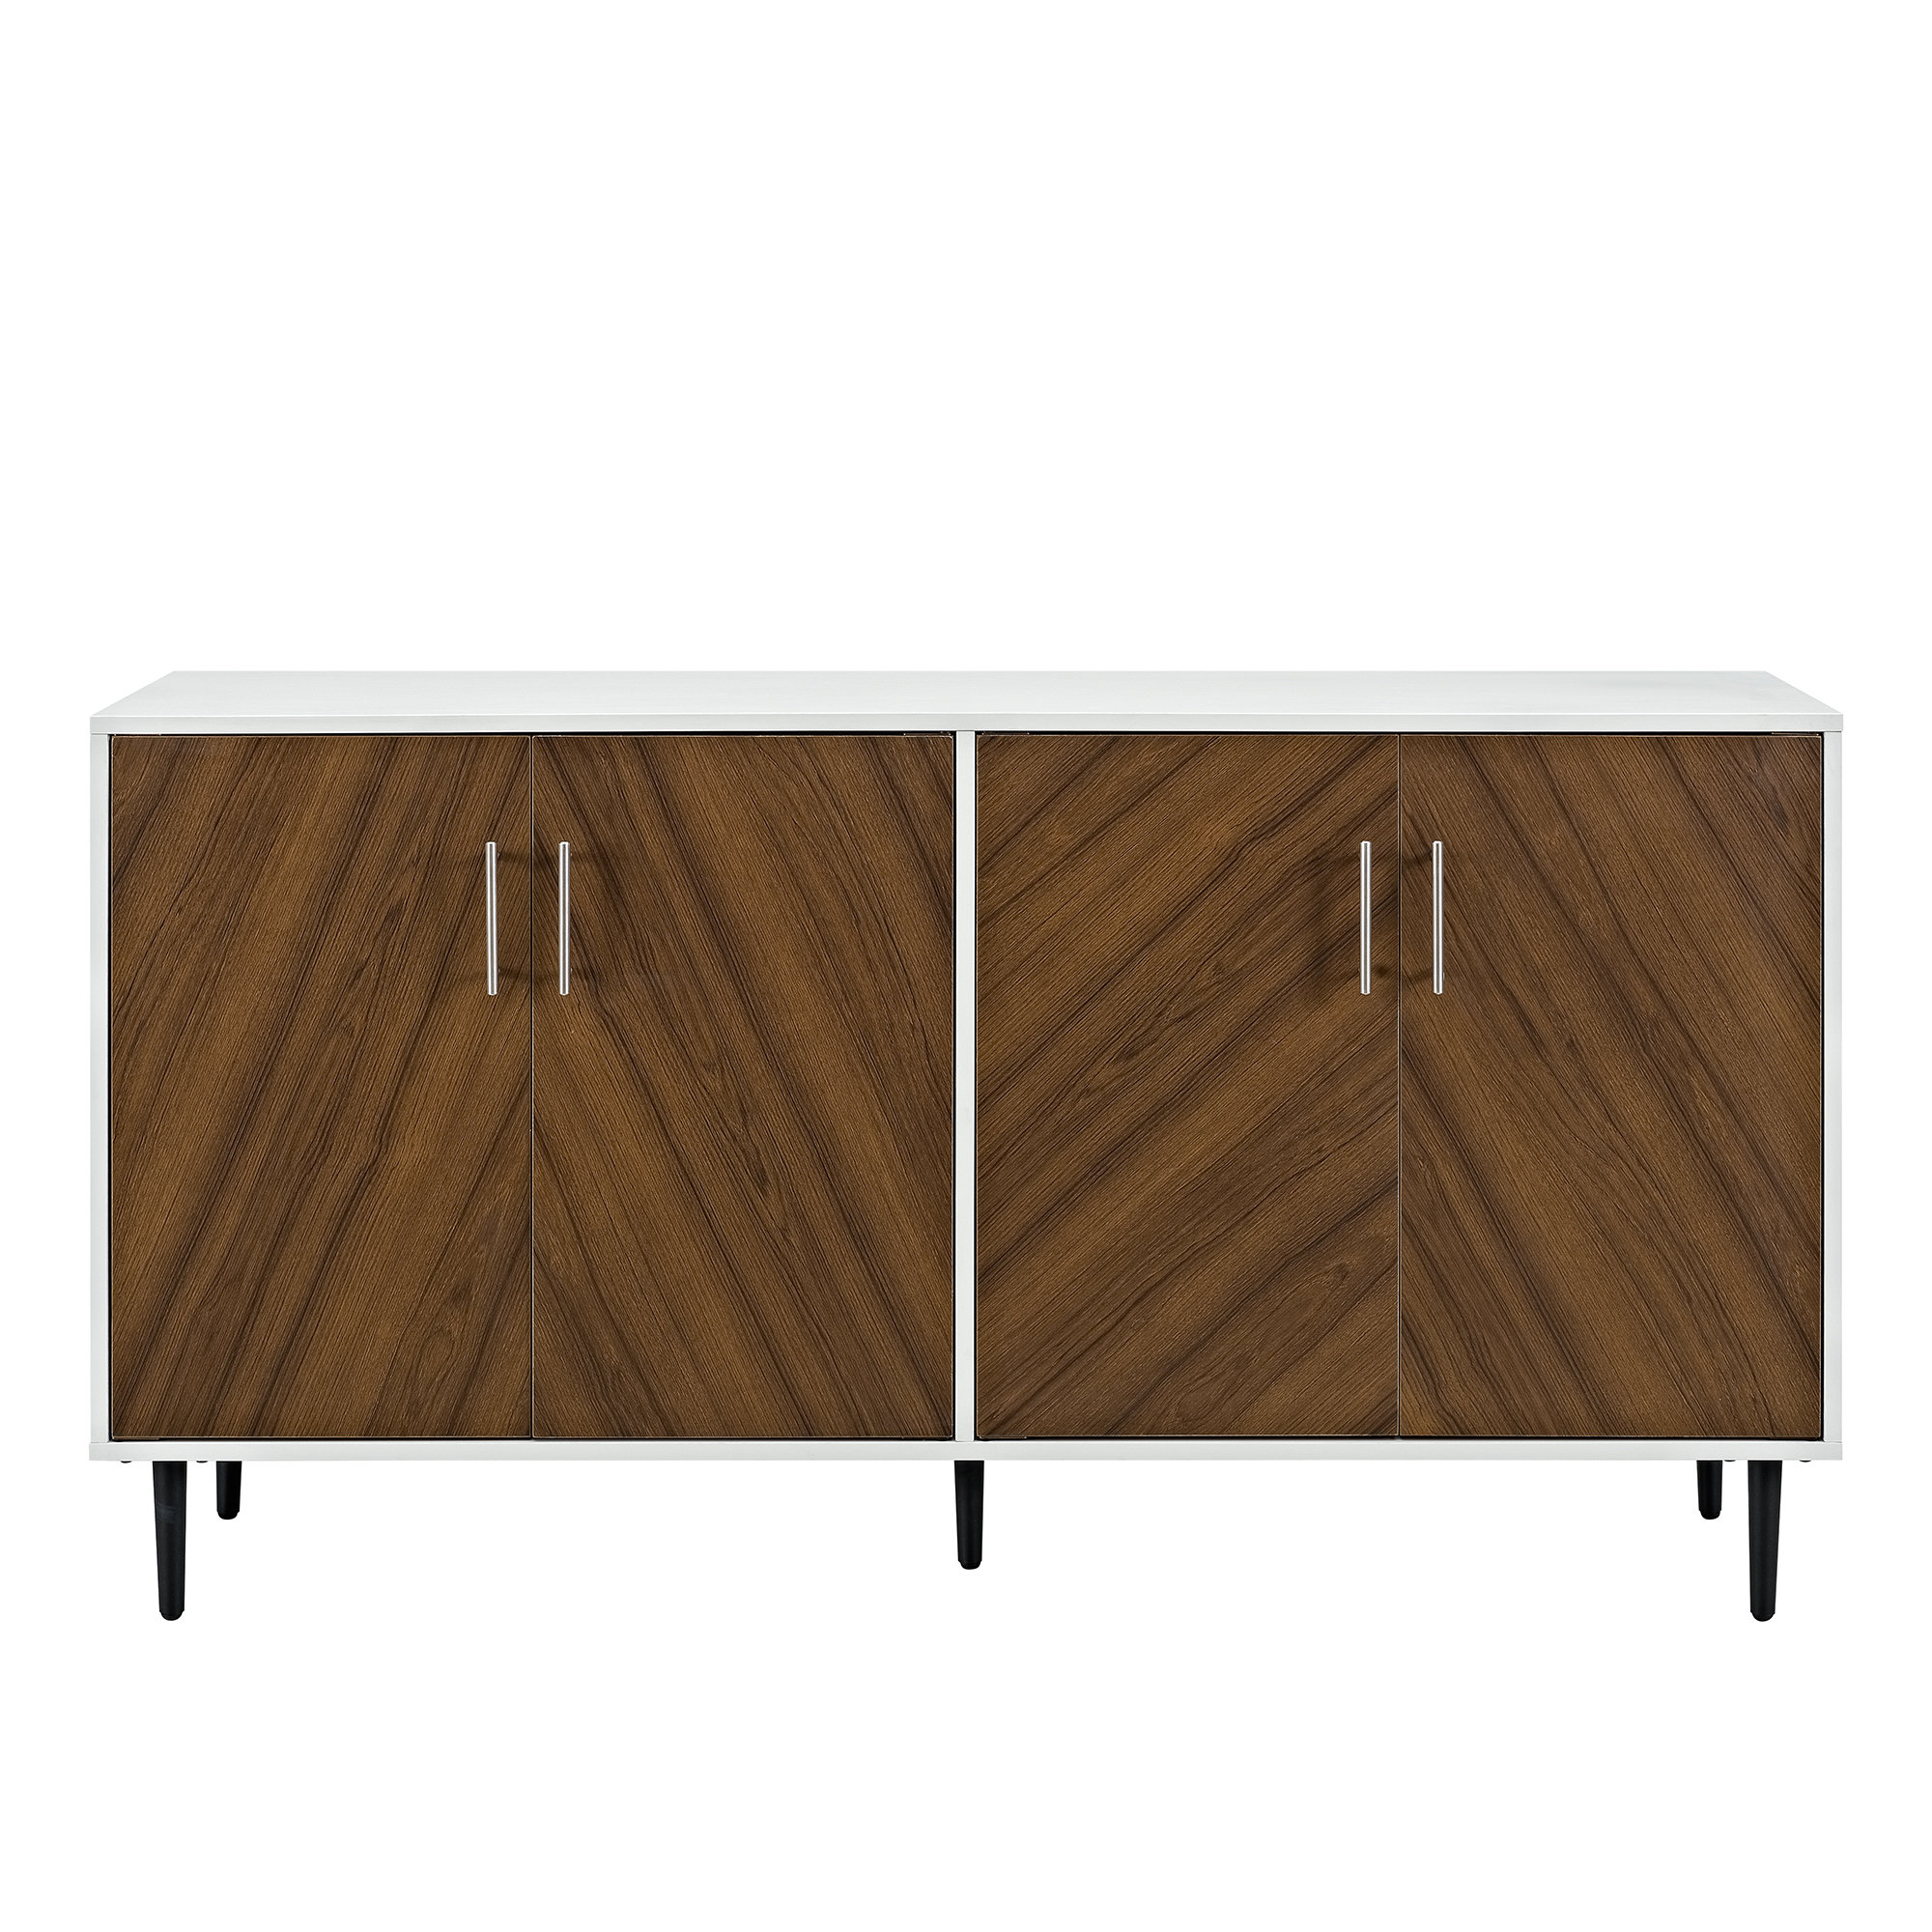 Modern & Contemporary Colorful Credenza | Allmodern For Lainey Credenzas (View 18 of 30)